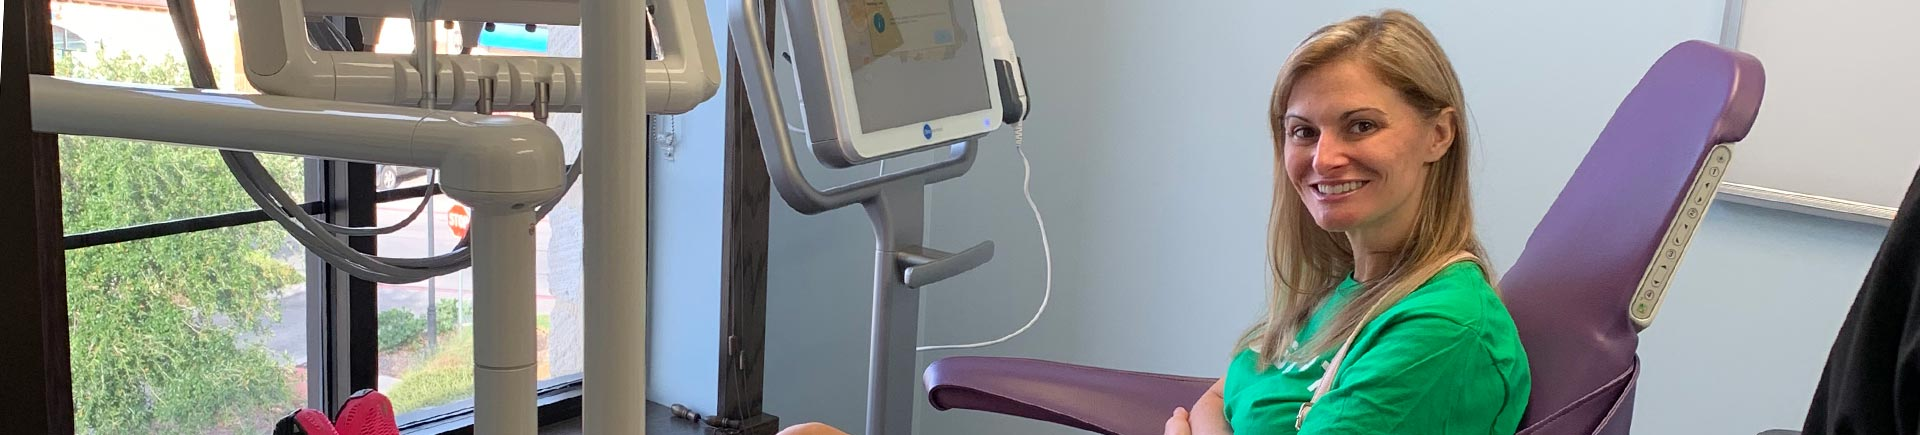 satisfied woman in a dental chair at A patient in a dental chair at Schatz Orthodontics